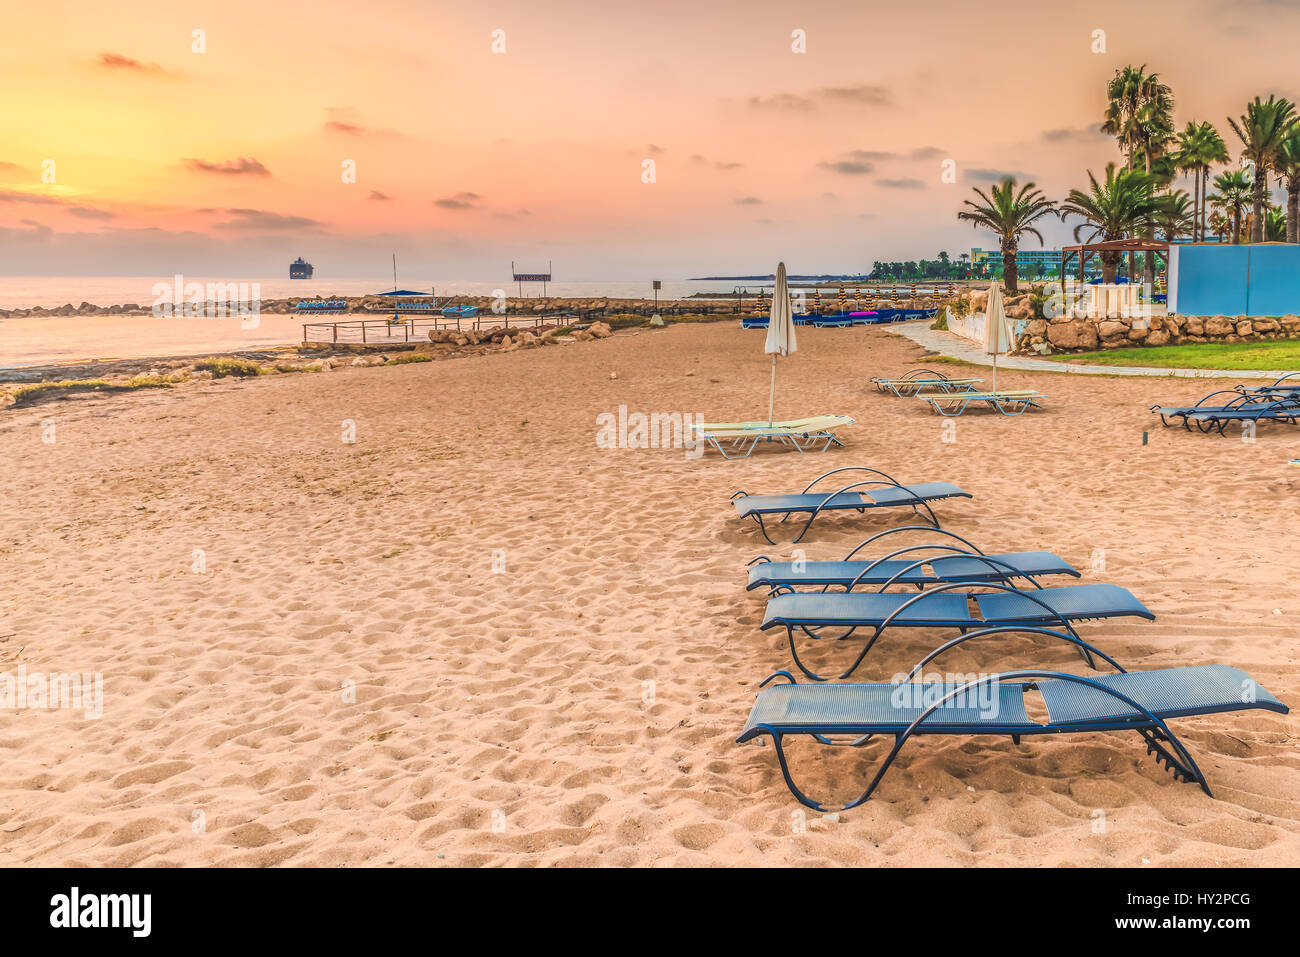 Sunset on the beach in the town of Paphos, Cyprus. View of the Mediterranean Sea and the coastline. - Stock Image